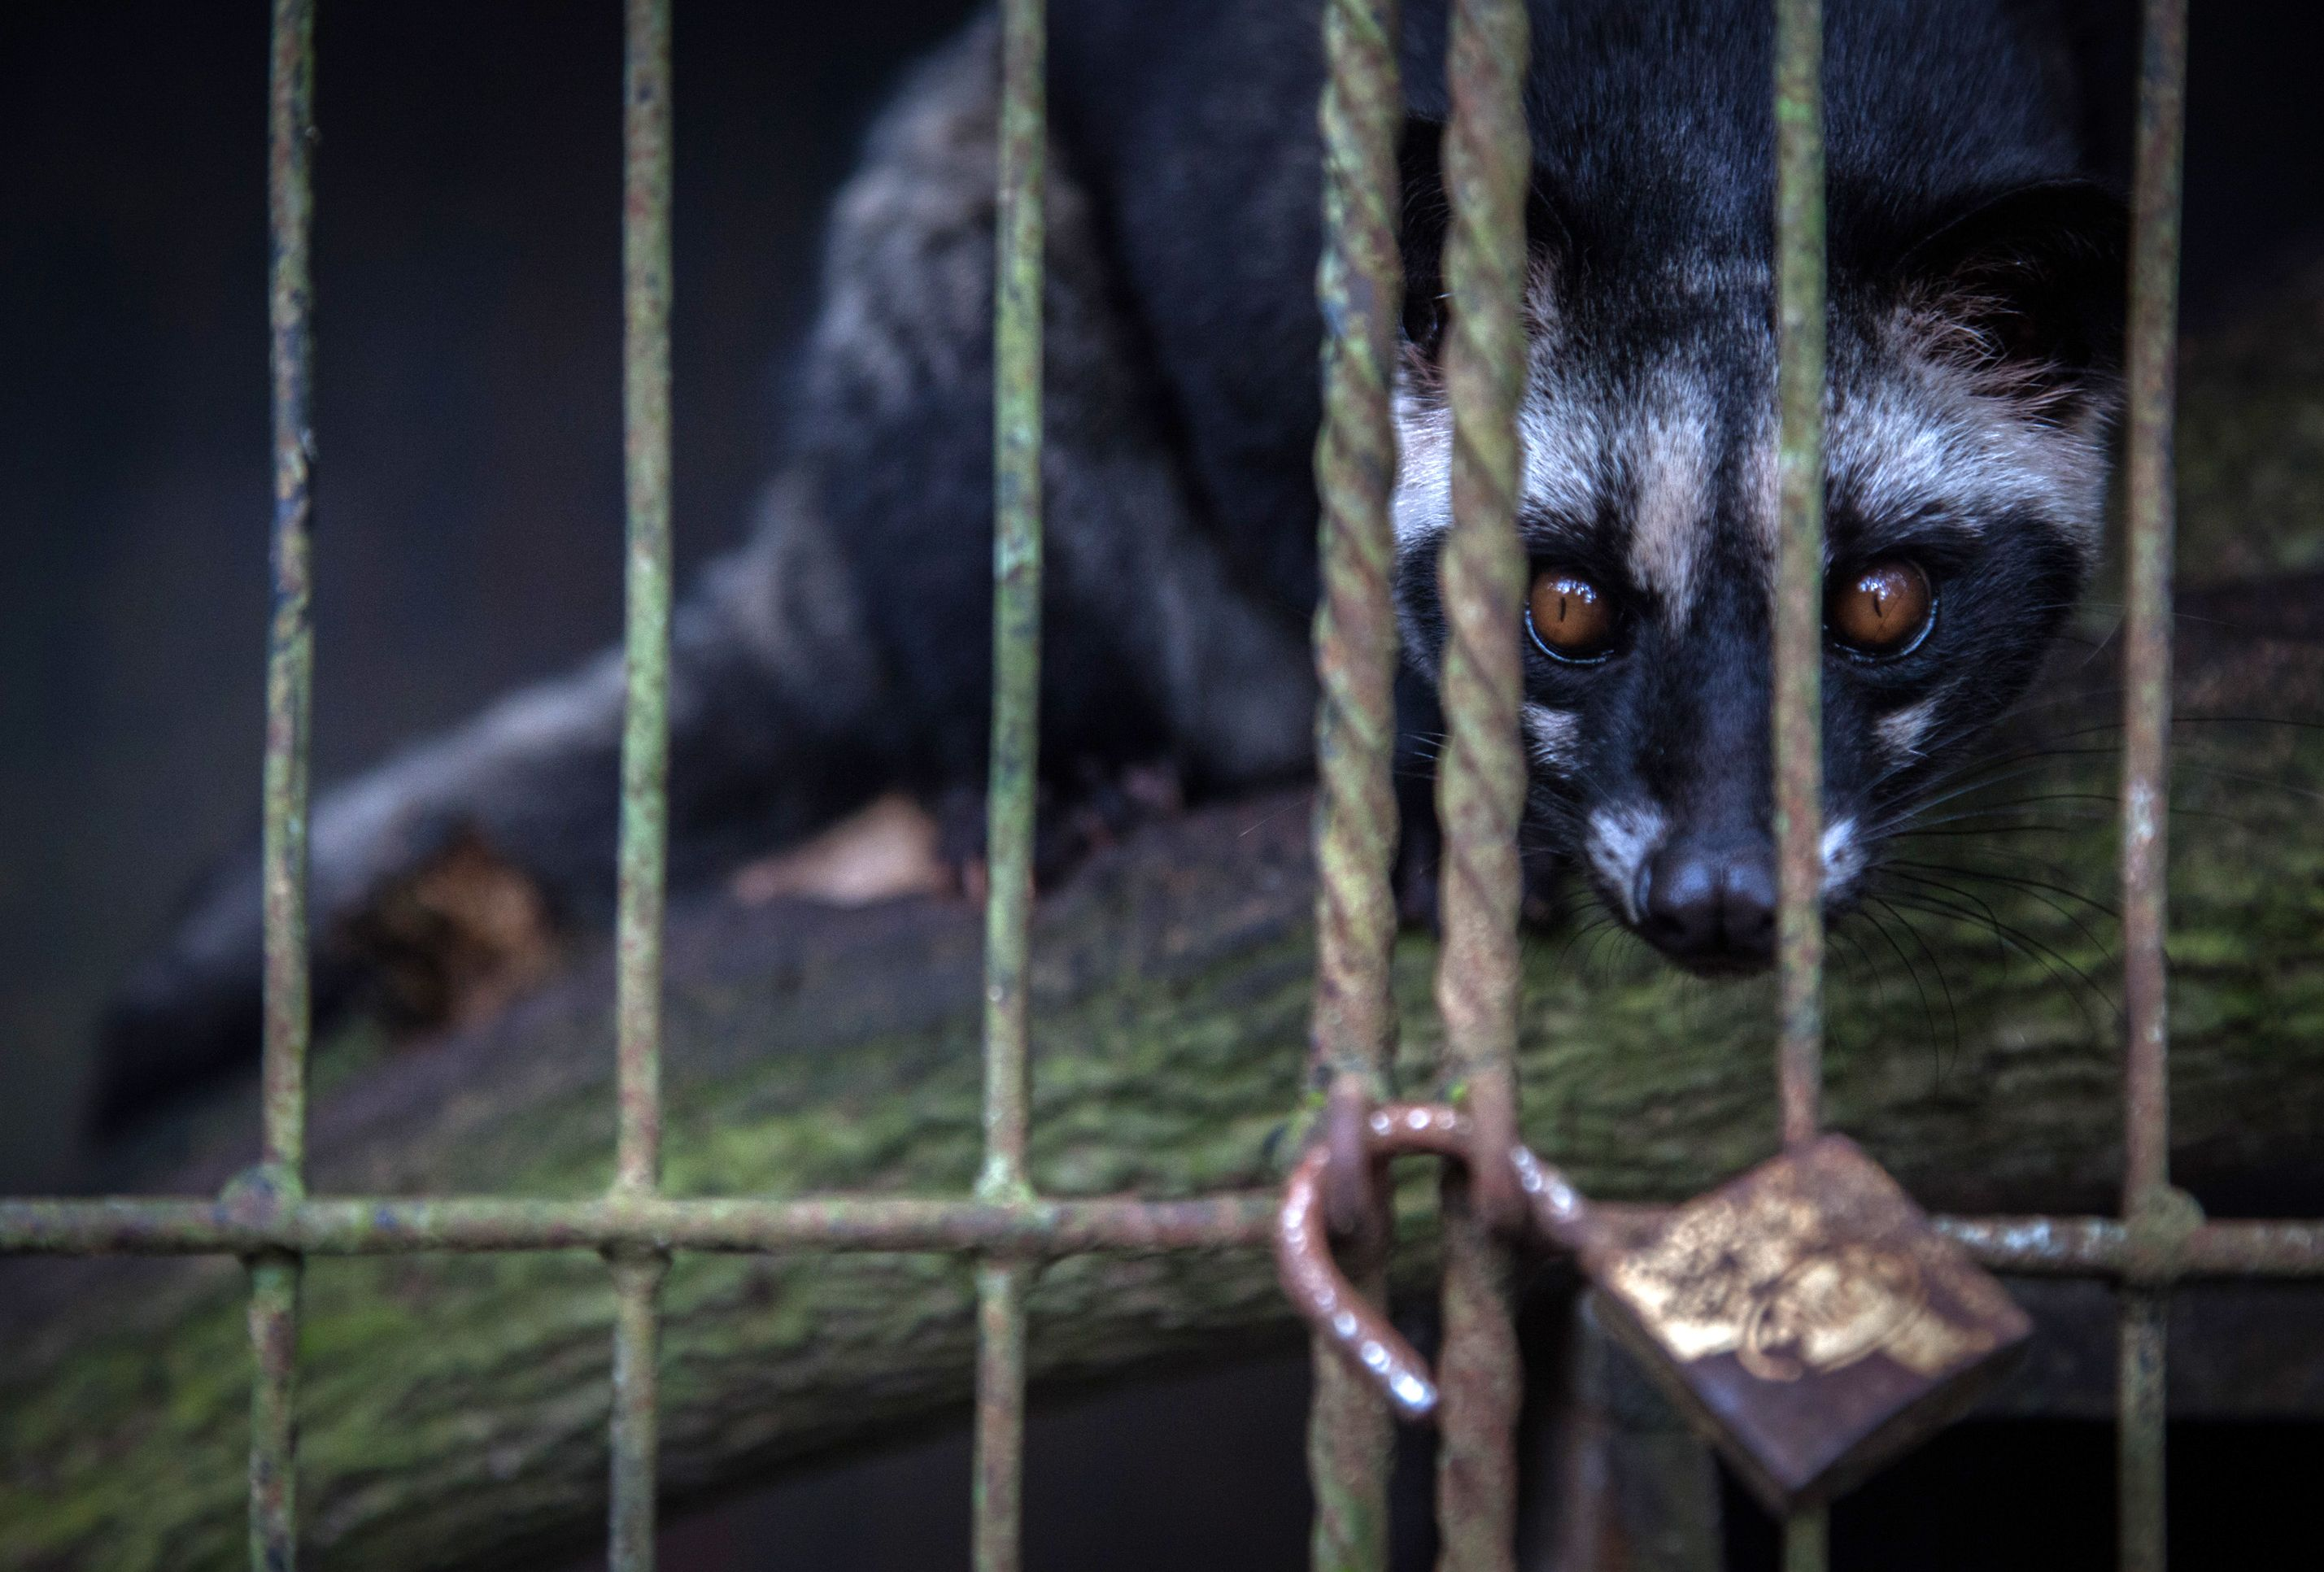 Sustainable Agriculture Network bans caged civets on its